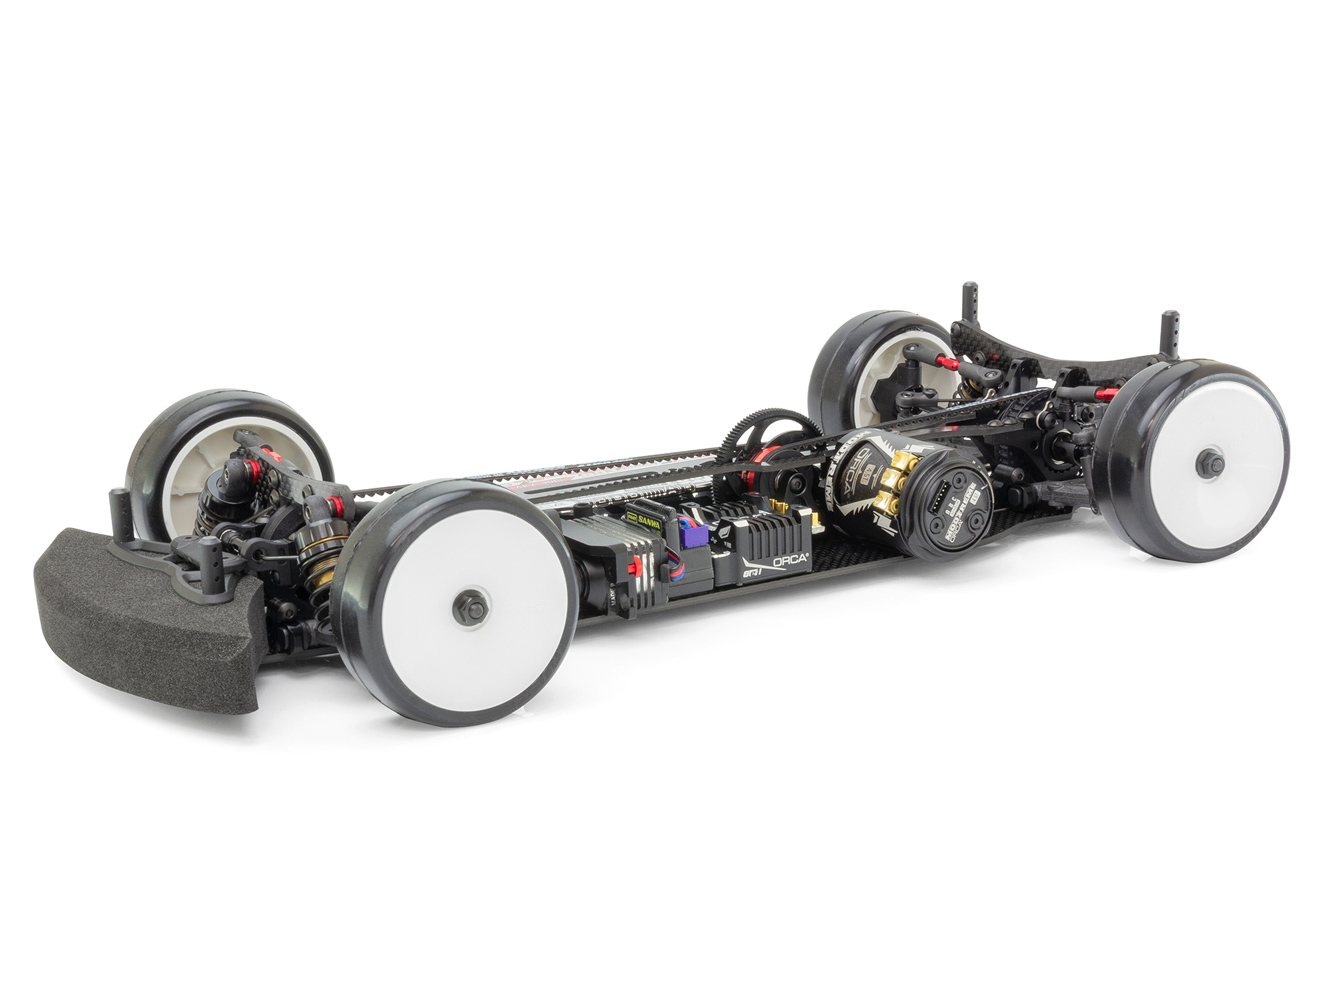 [CM-00006] IF14-II 1/10 SCALE EP TOURING CAR CHASSIS KIT (Carbon Chassis Edition)